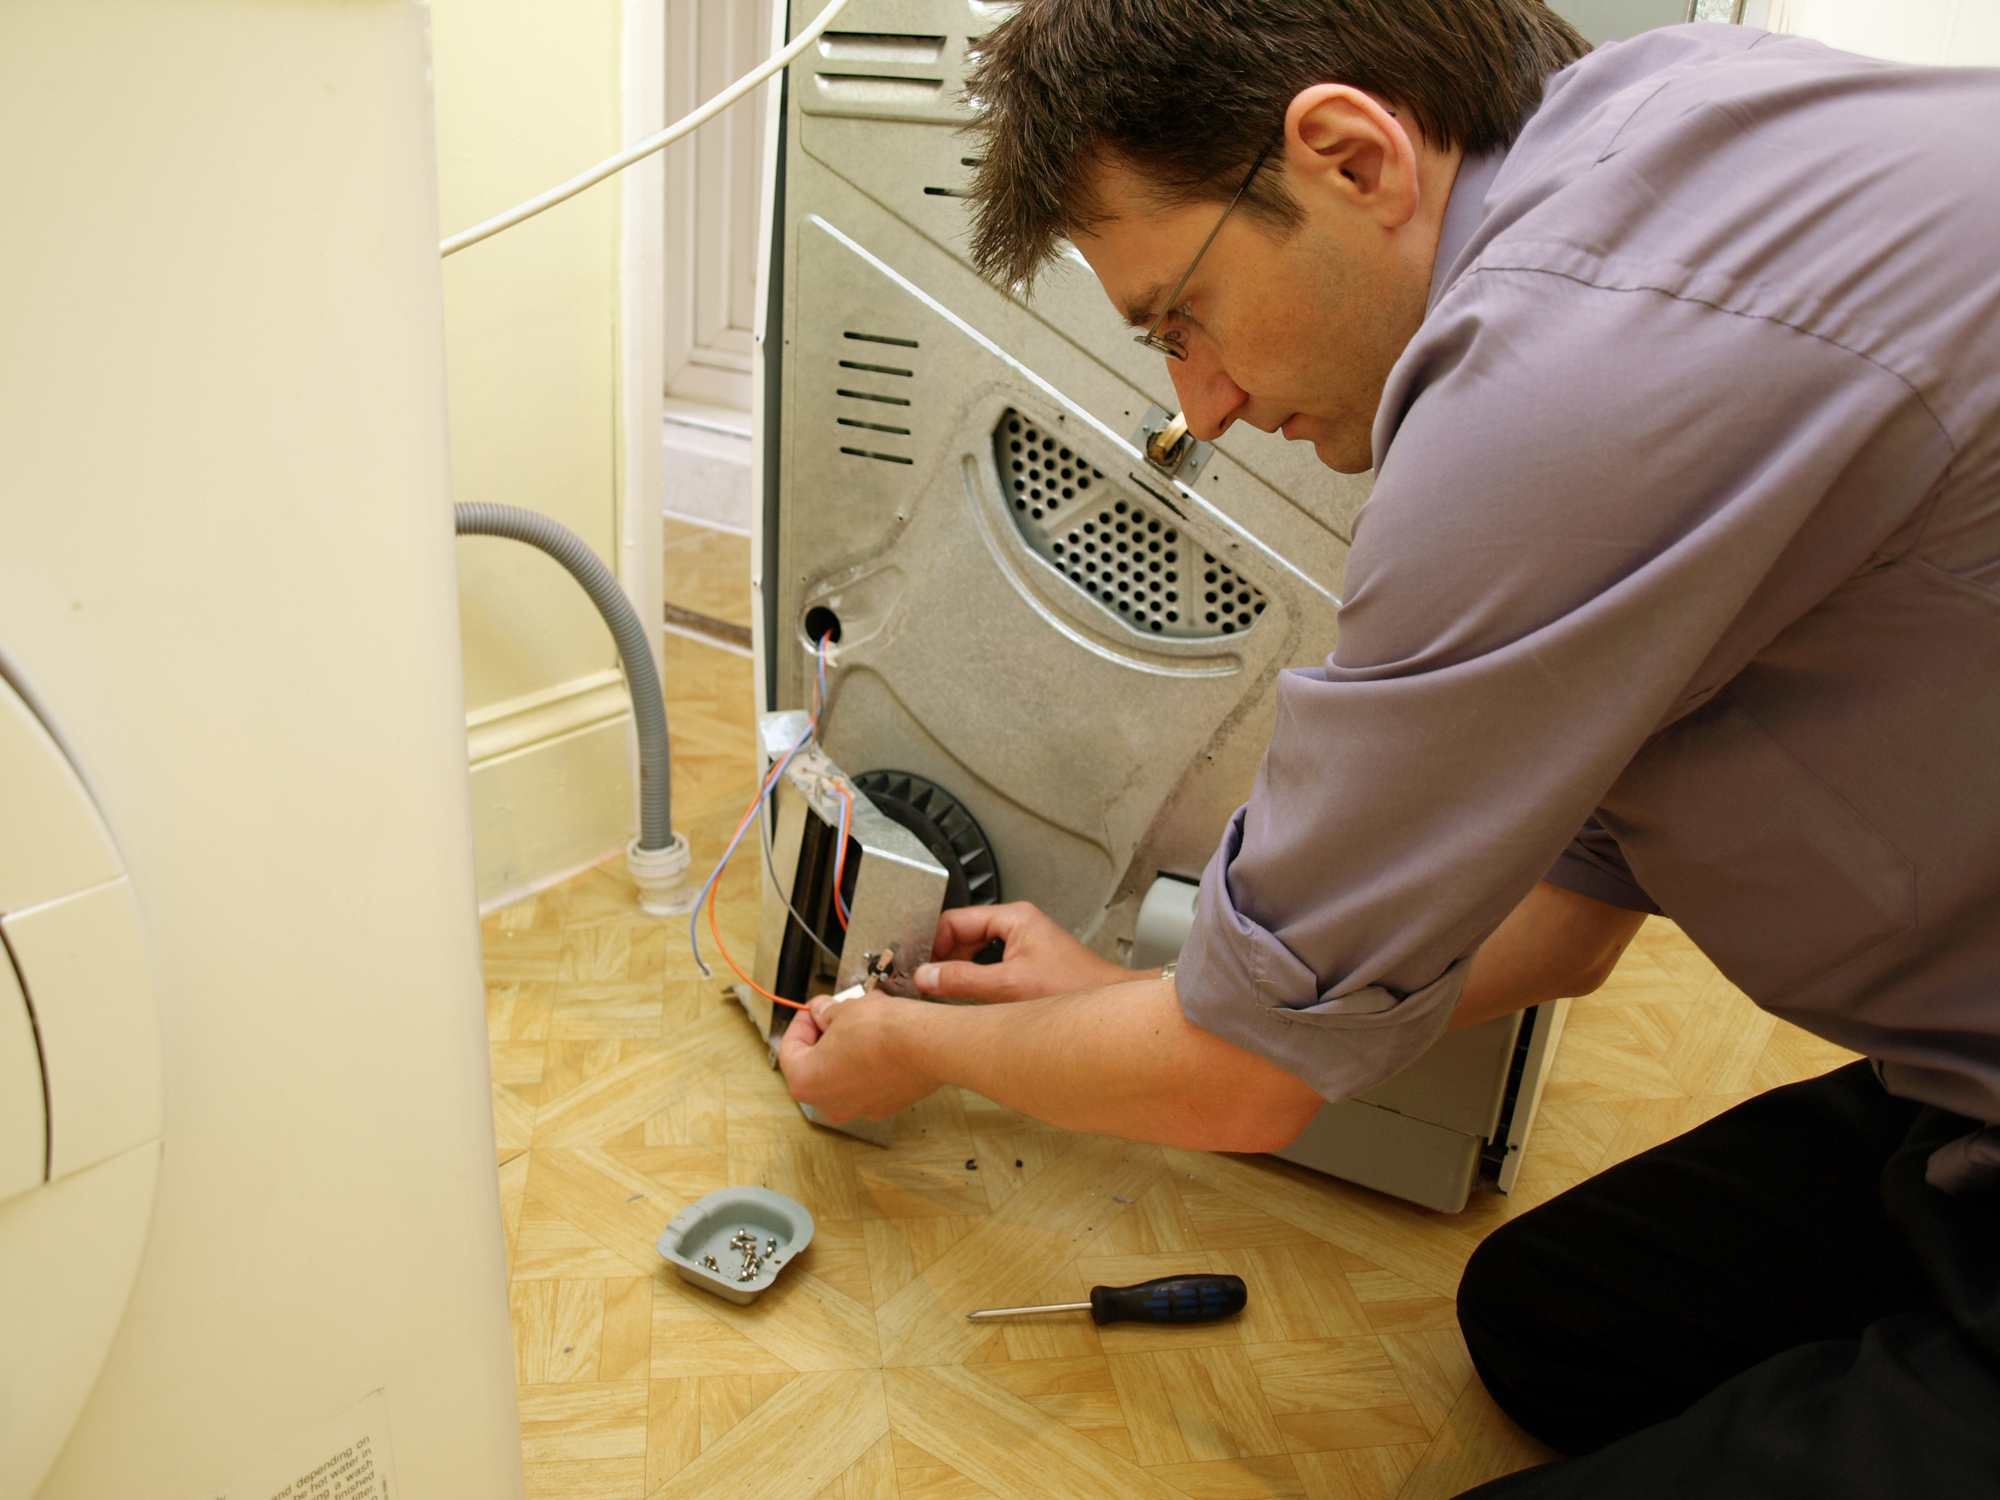 Troubleshooting Problems With Common Household Appliances